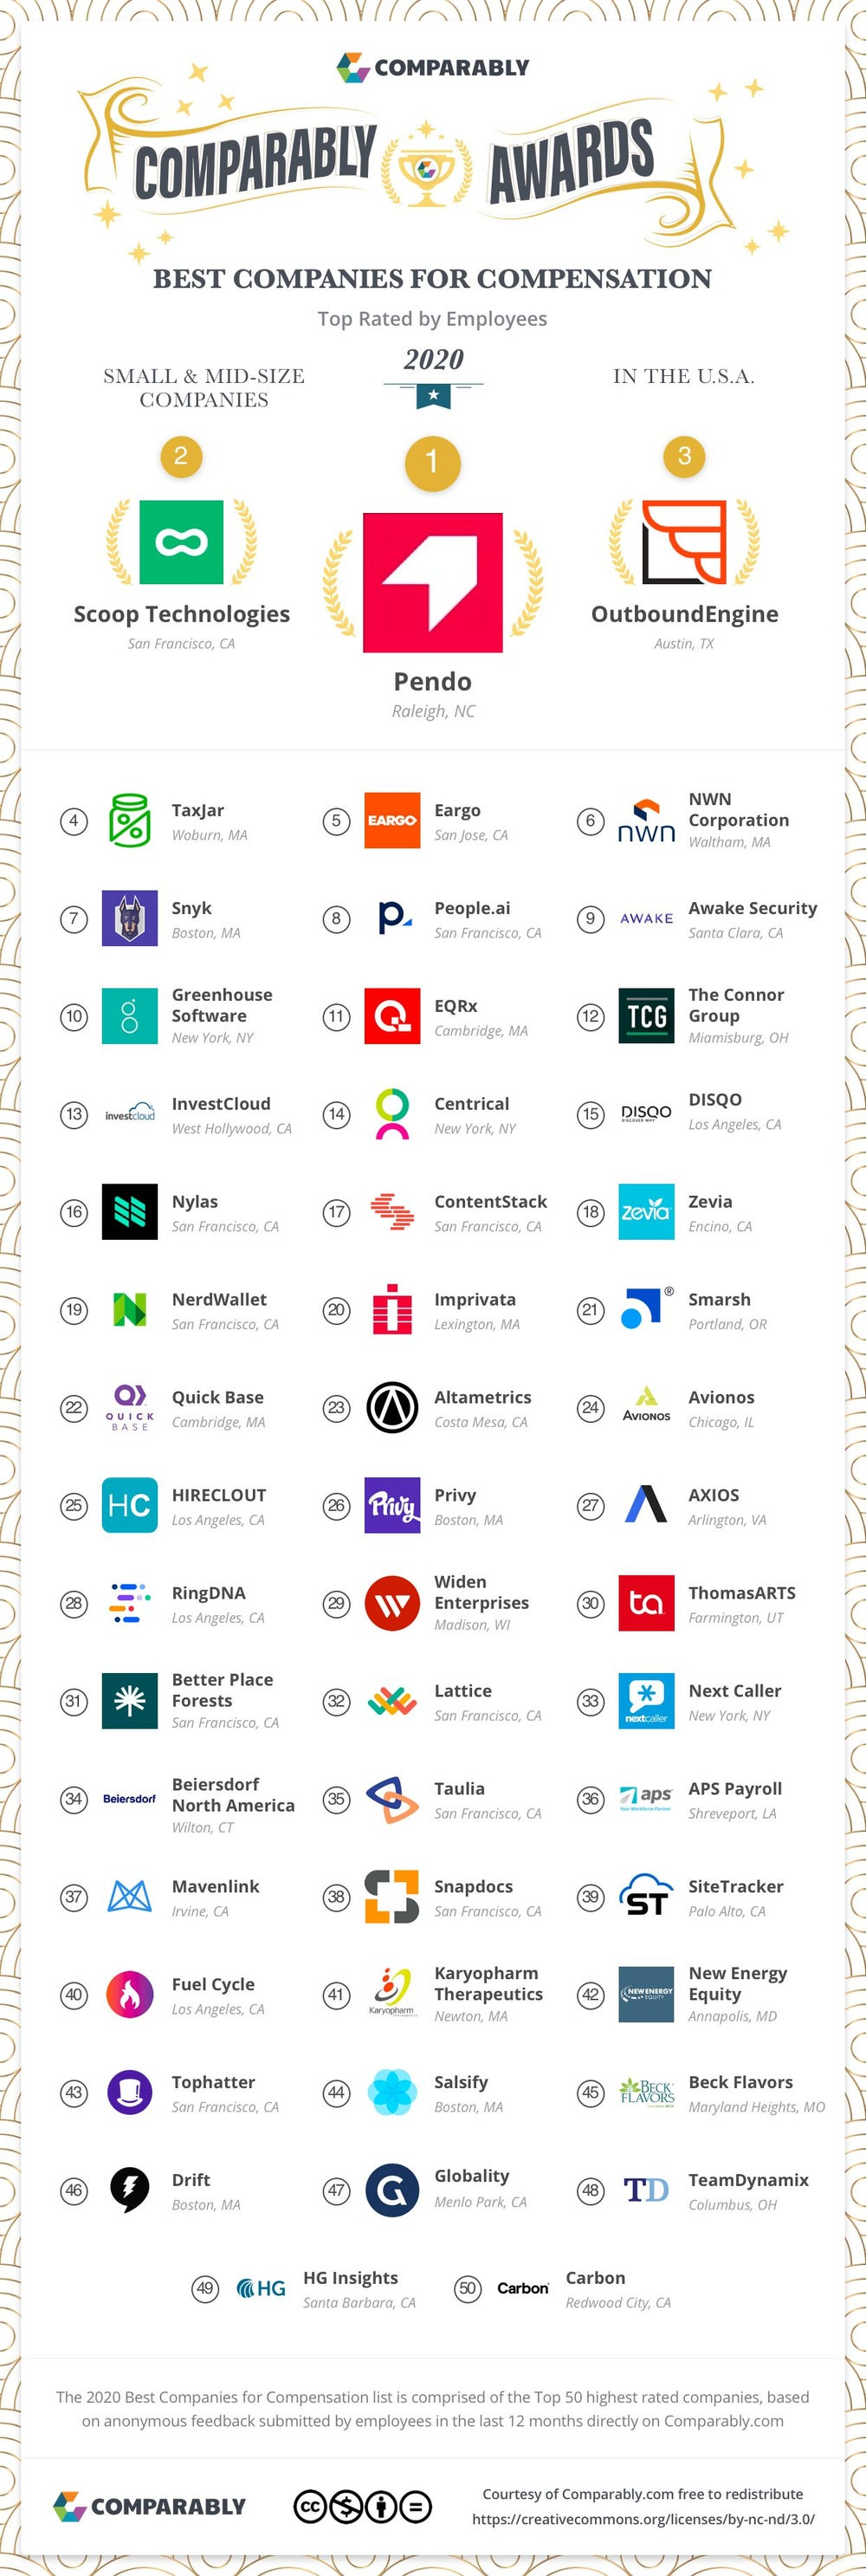 The 100 Companies with the Best Compensation in 2020